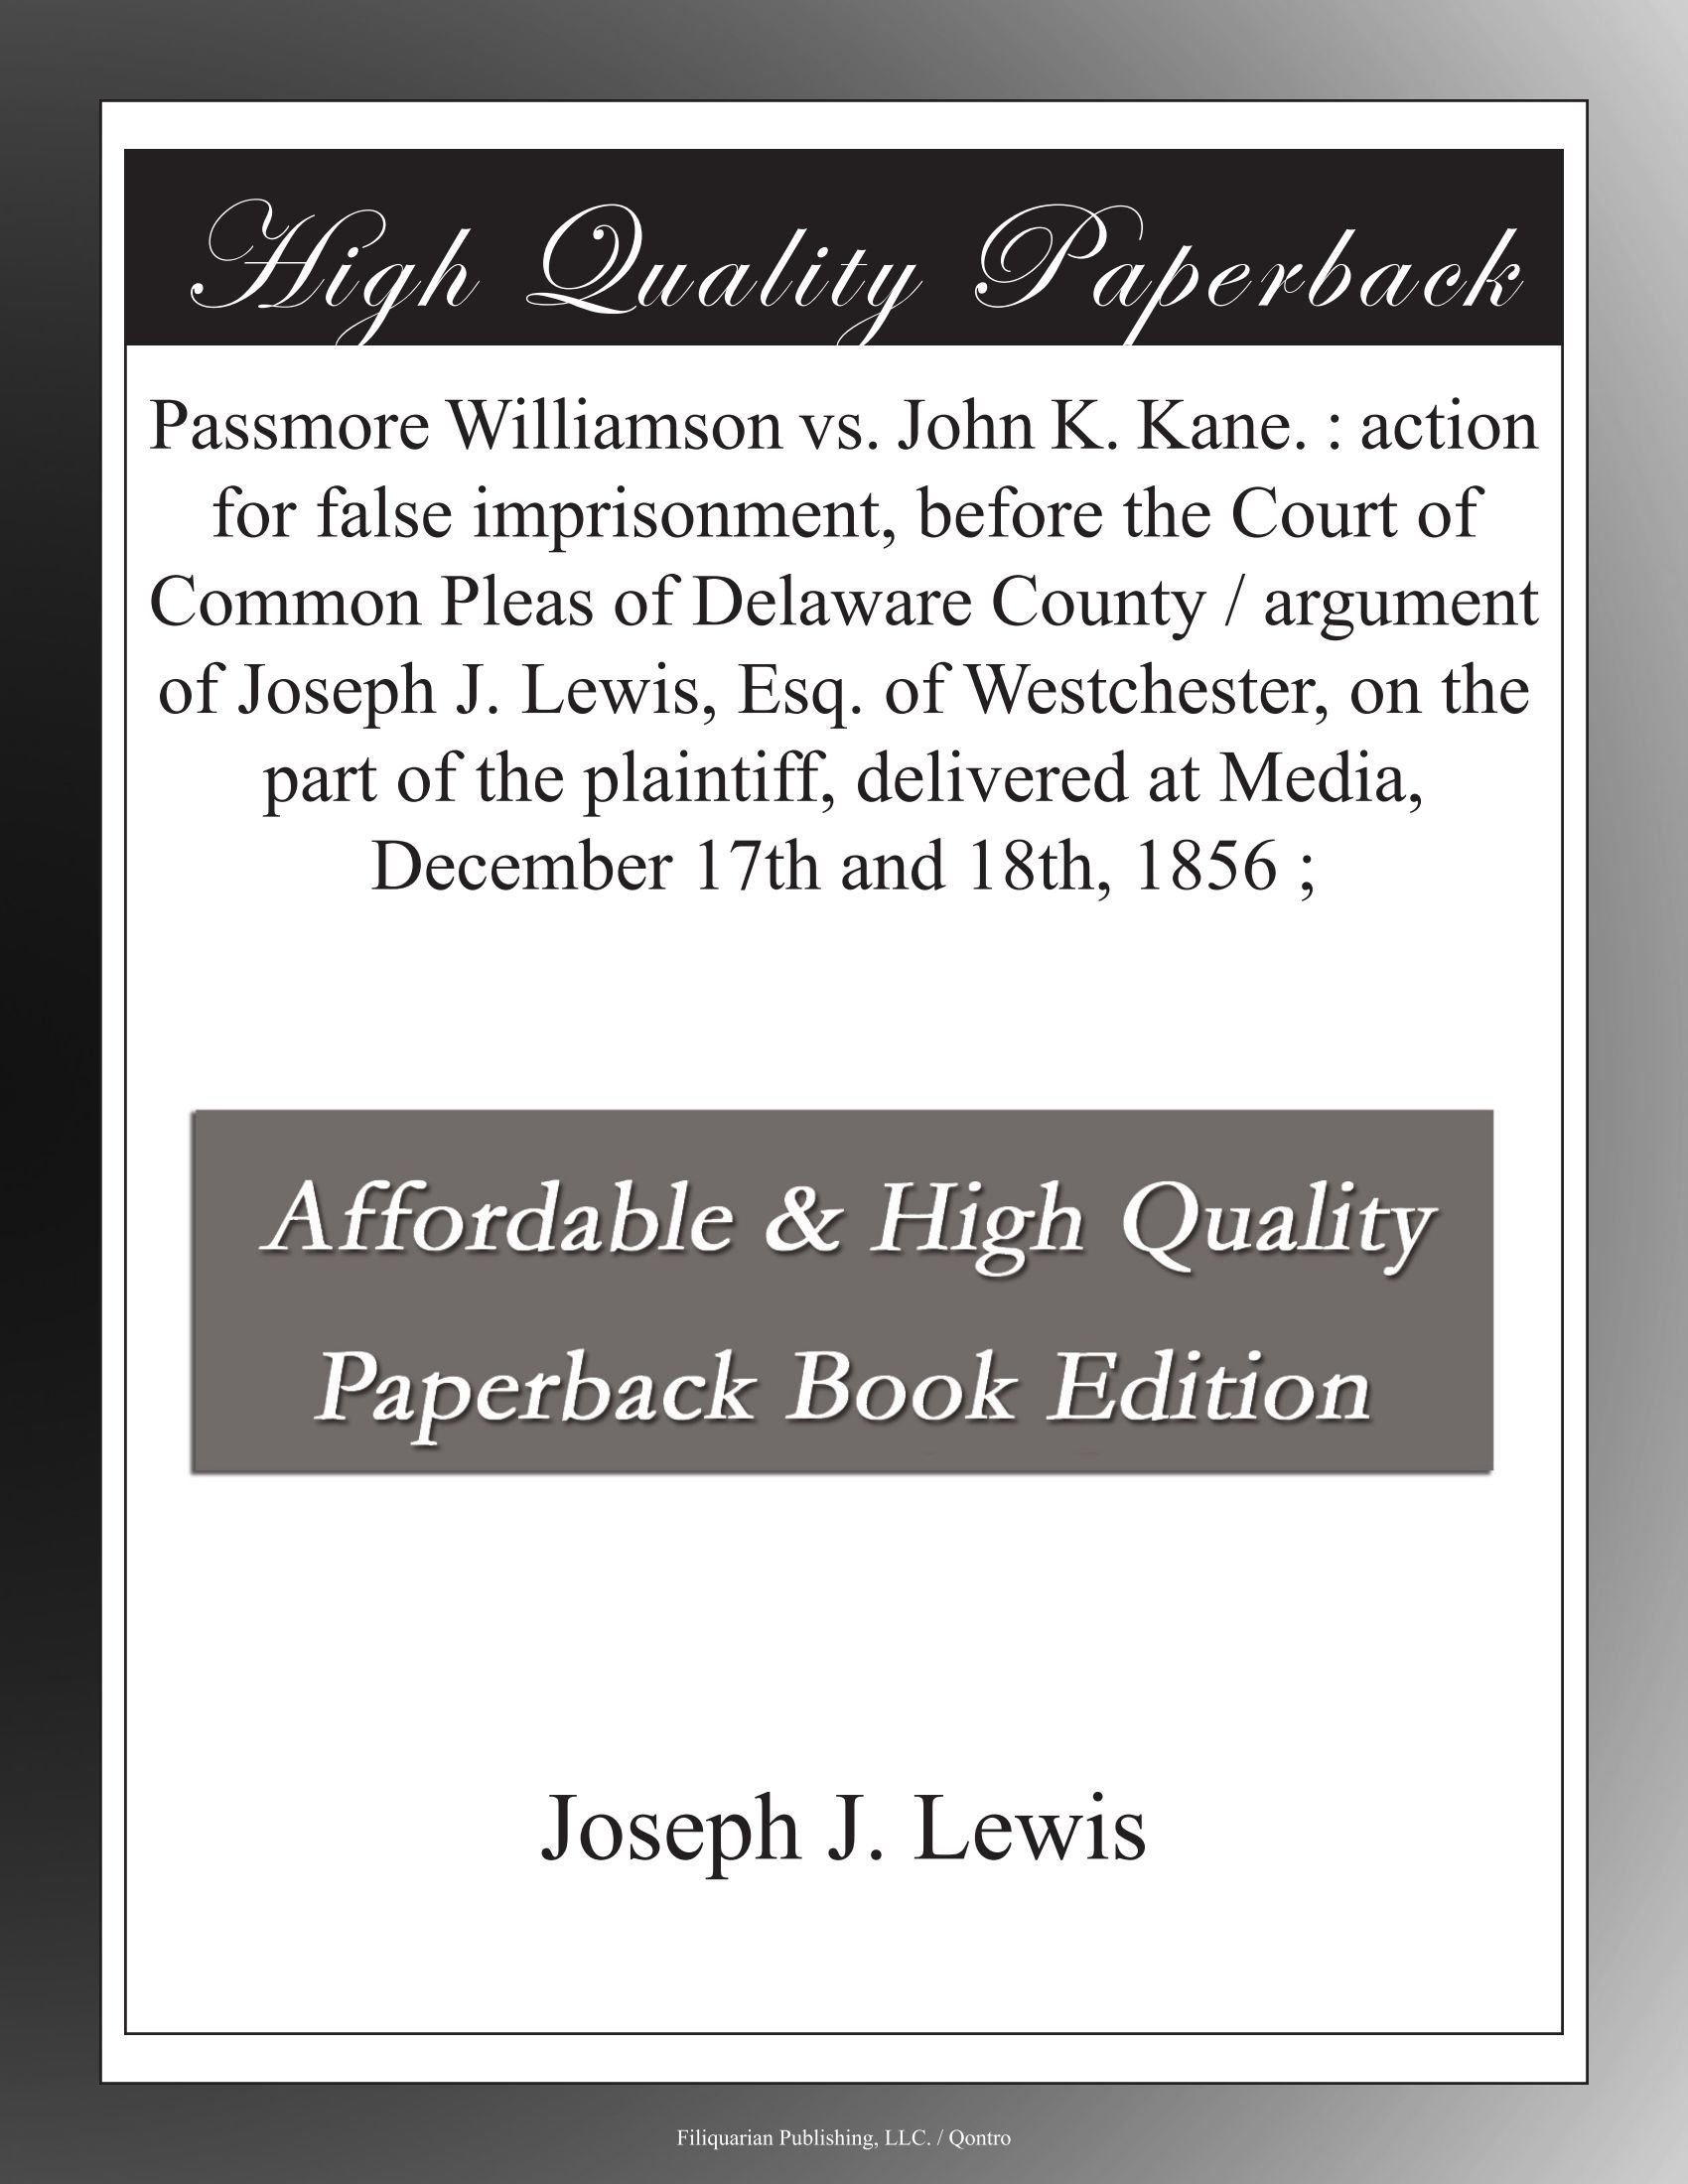 Passmore Williamson vs. John K. Kane. : action for false imprisonment, before the Court of Common Pleas of Delaware County / argument of Joseph J. ... at Media, December 17th and 18th, 1856 ; ebook